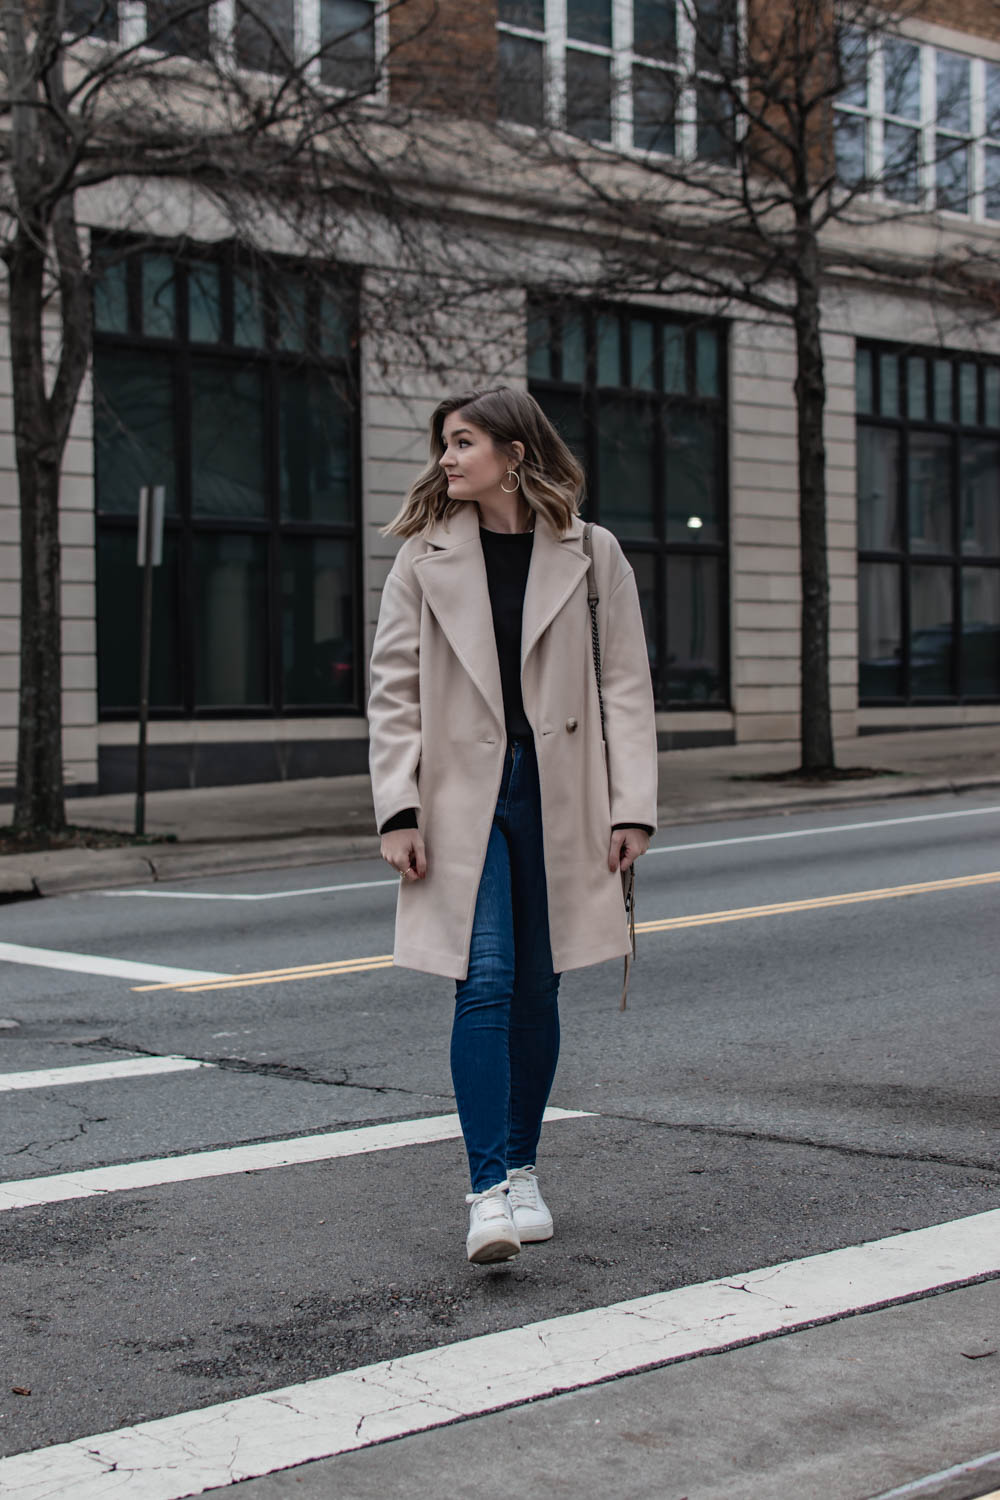 Essential Winter Basics with Mott & Bow